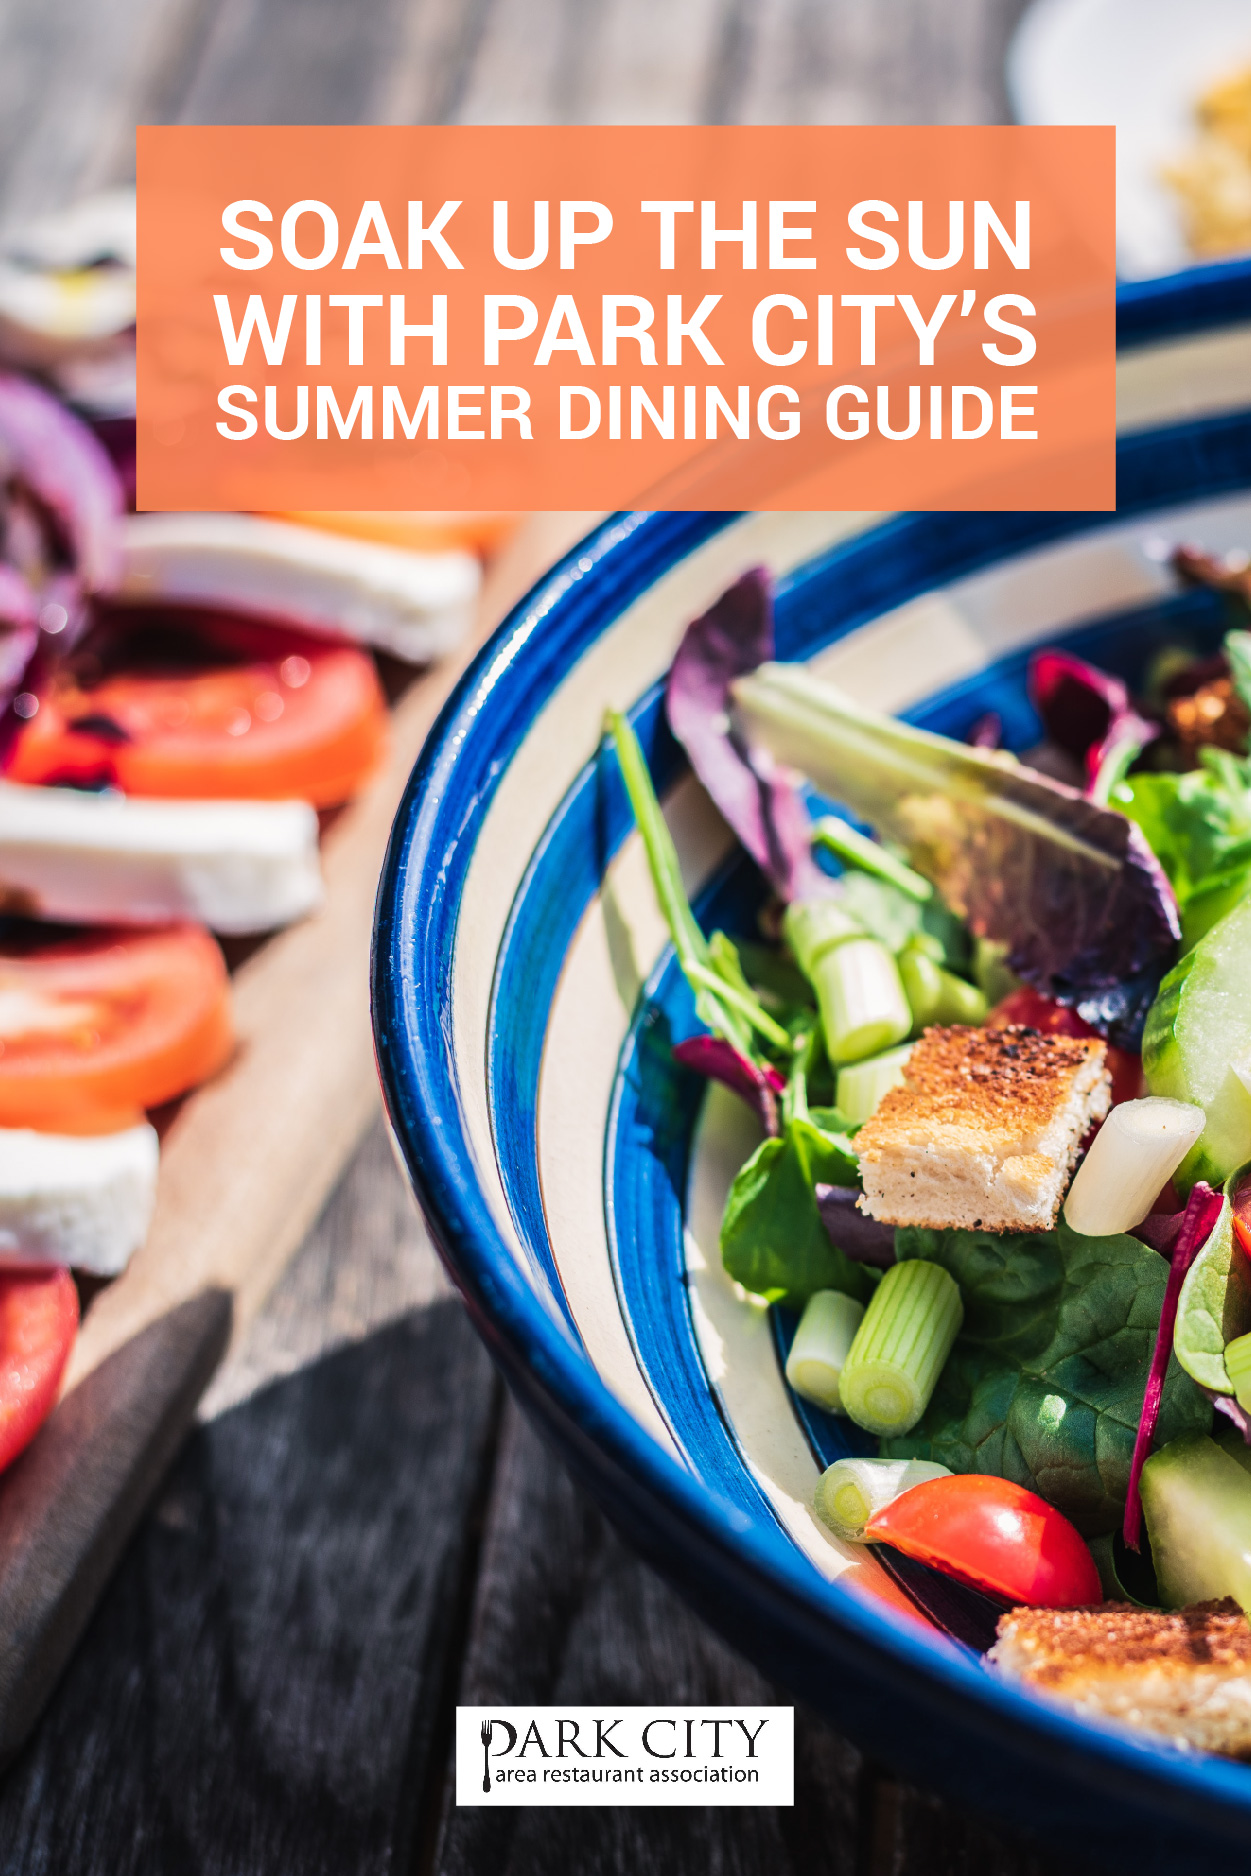 Park City's summer dining guide.